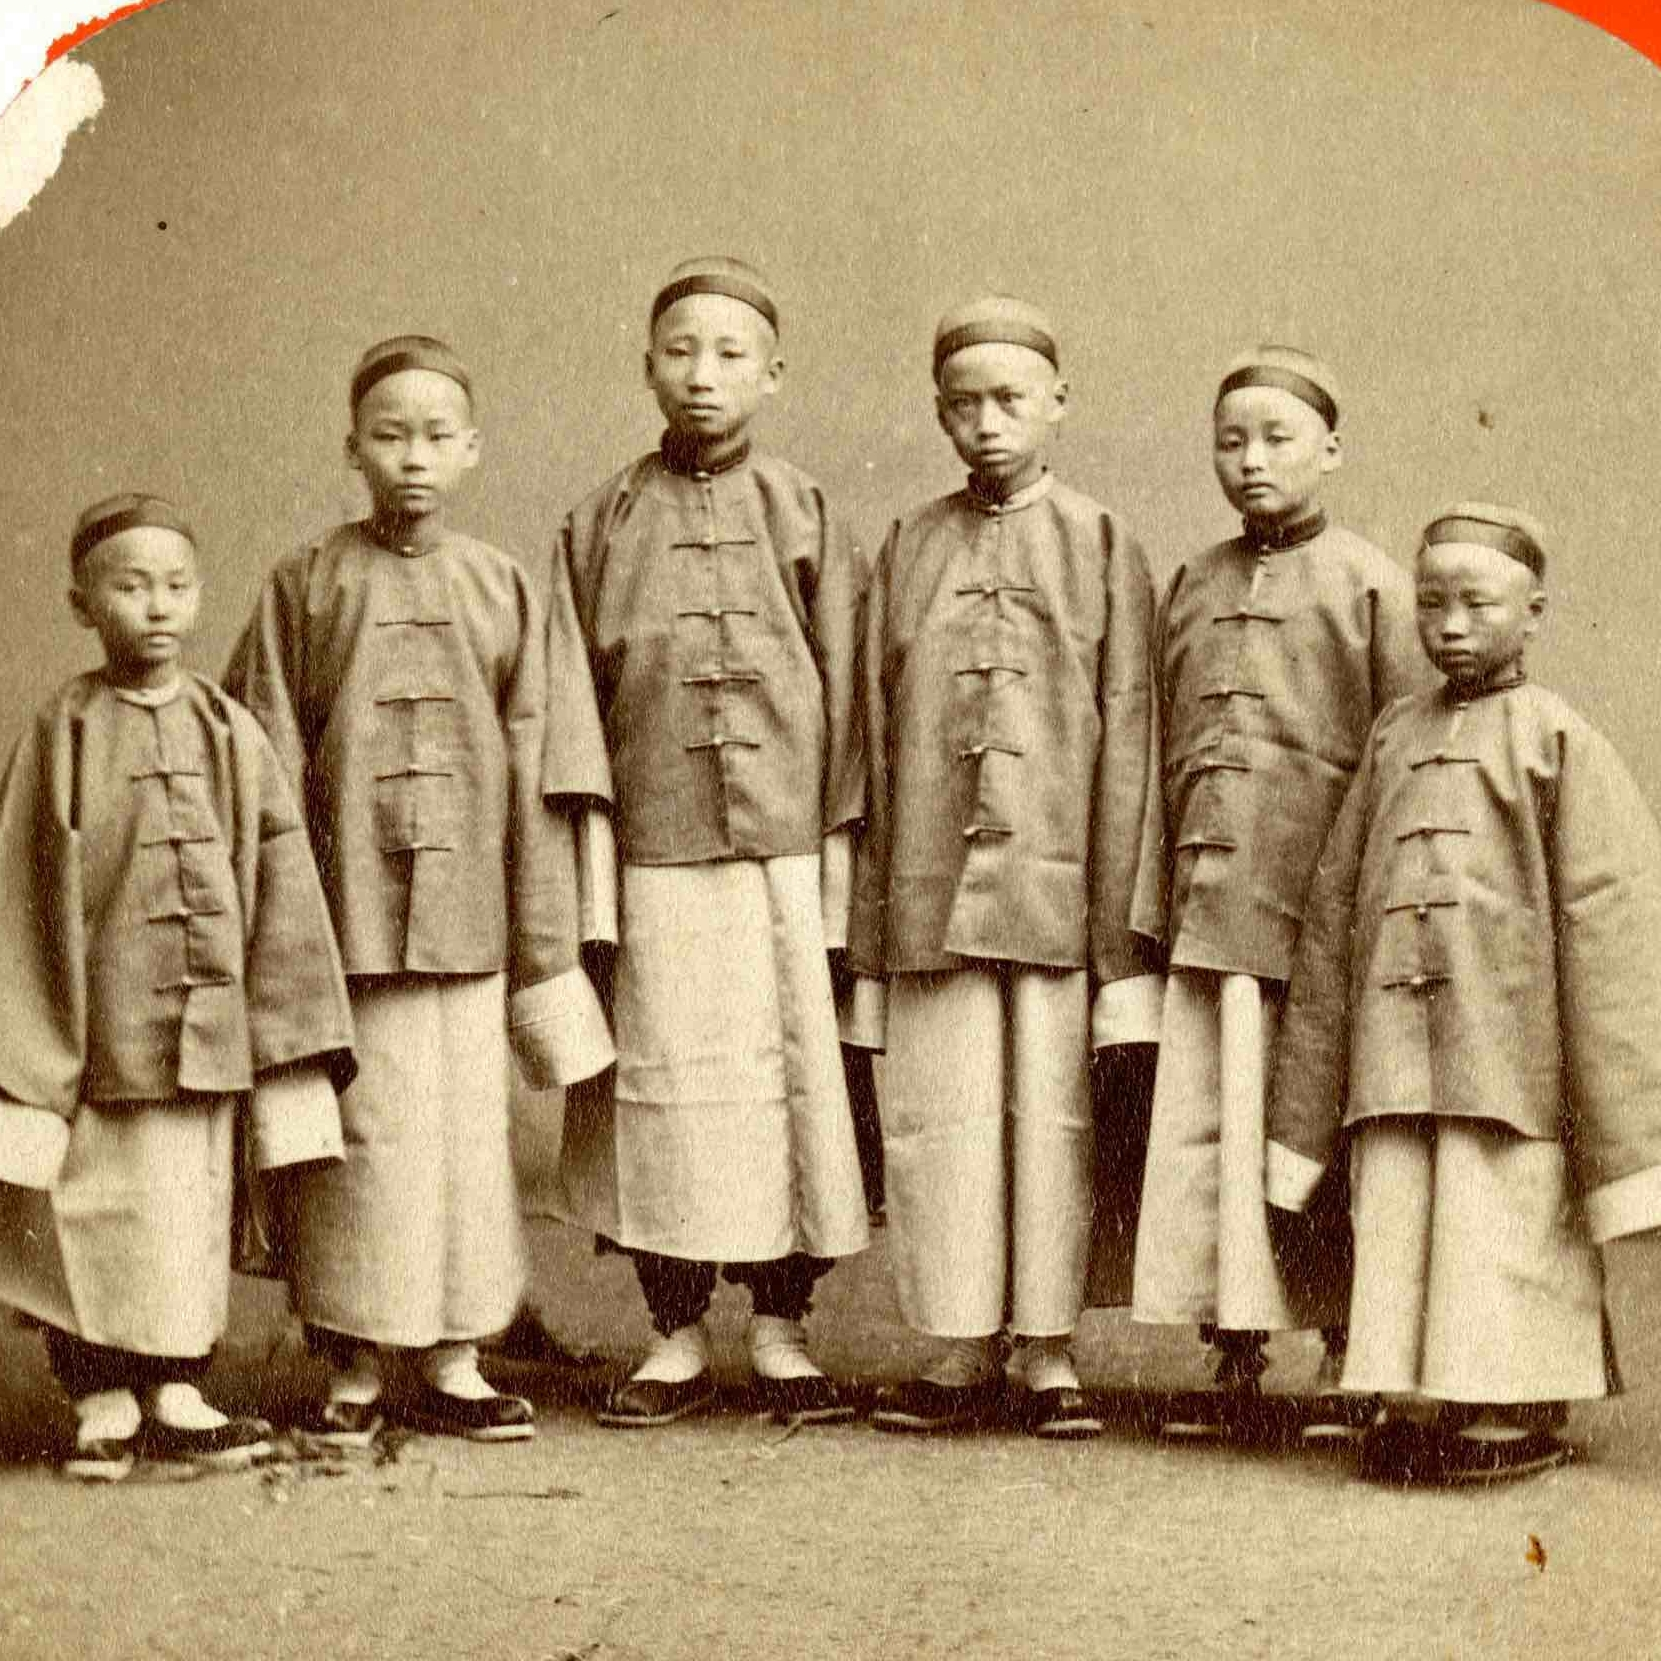 """""""Some of the Chinese students as they landed in San Francisco in 1872,""""Thomas E. LaFargue Papers, 1873-1946, 2-1-5,Manuscripts, Archives, and Special Collections, Washington State University Libraries. Used by permission."""